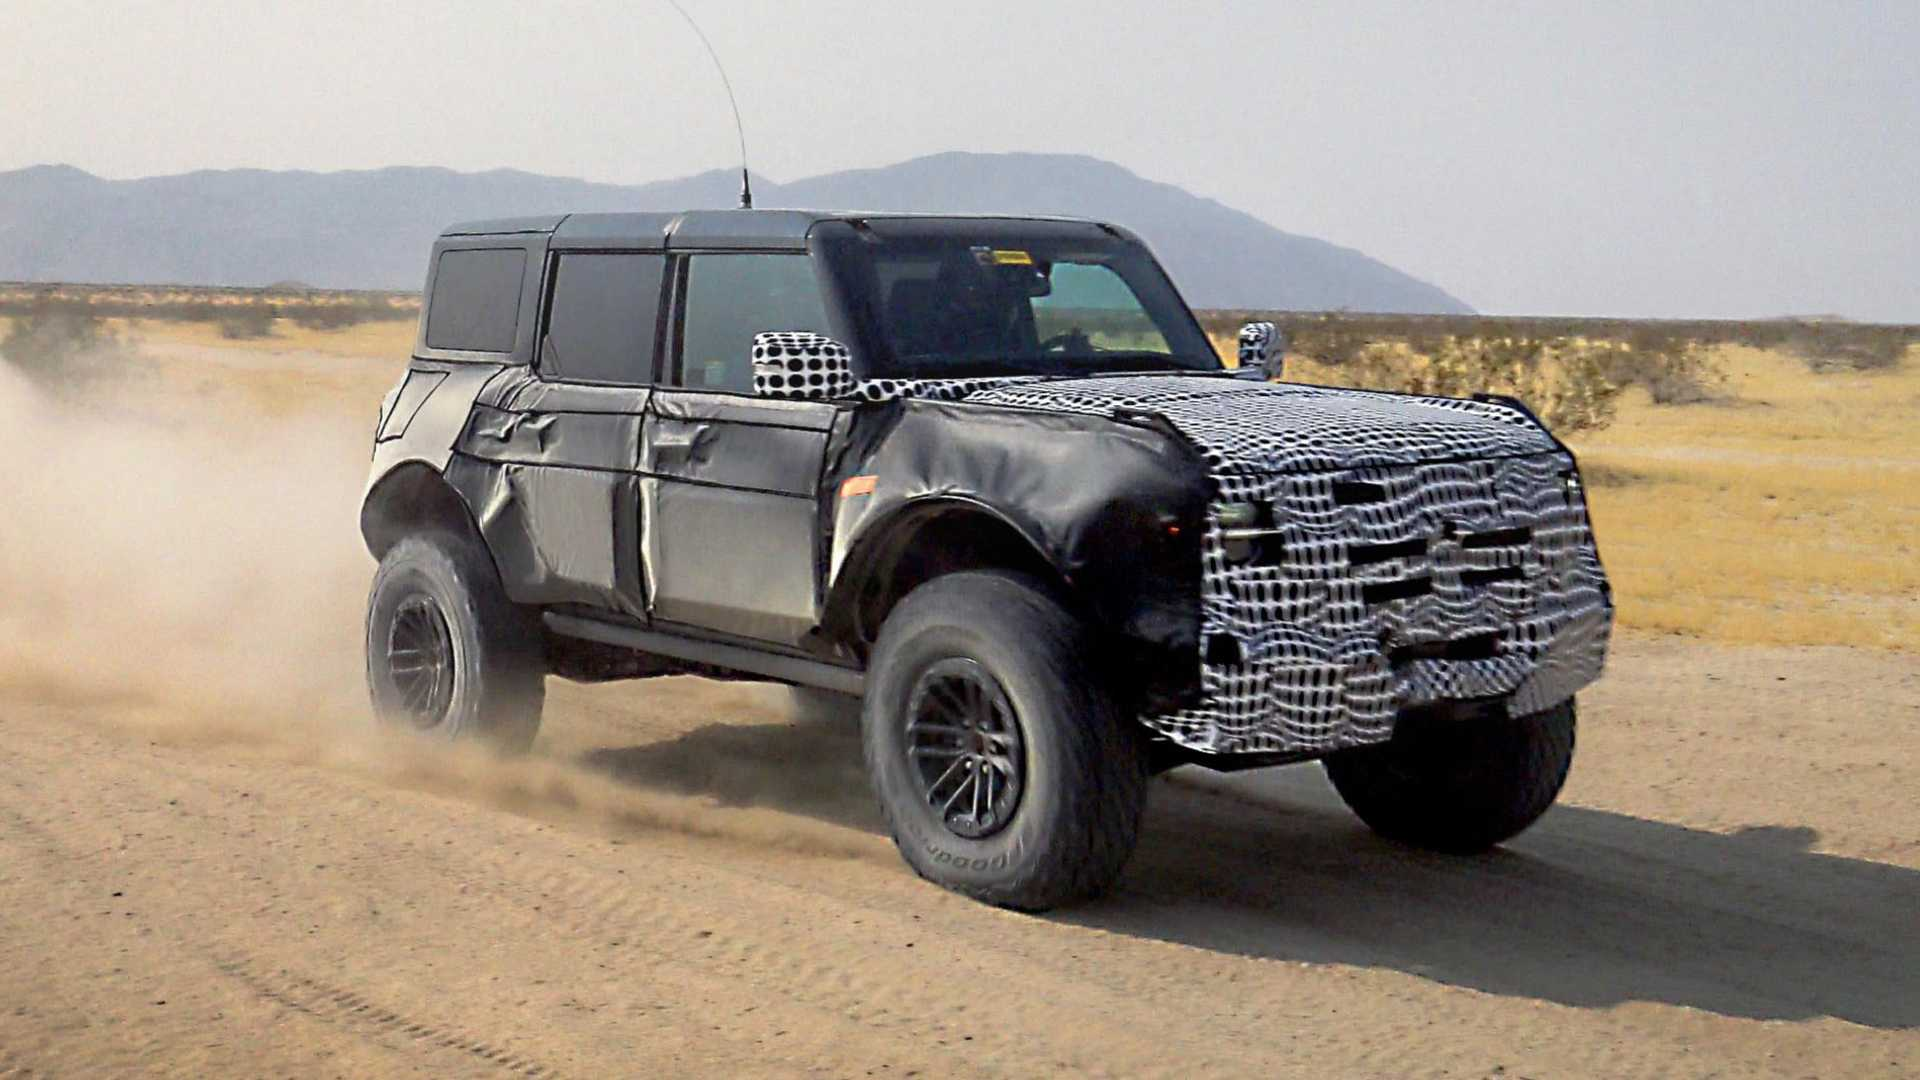 Ford Bronco Warthog Teaser Photo Shows 37-Inch 'Hooves'